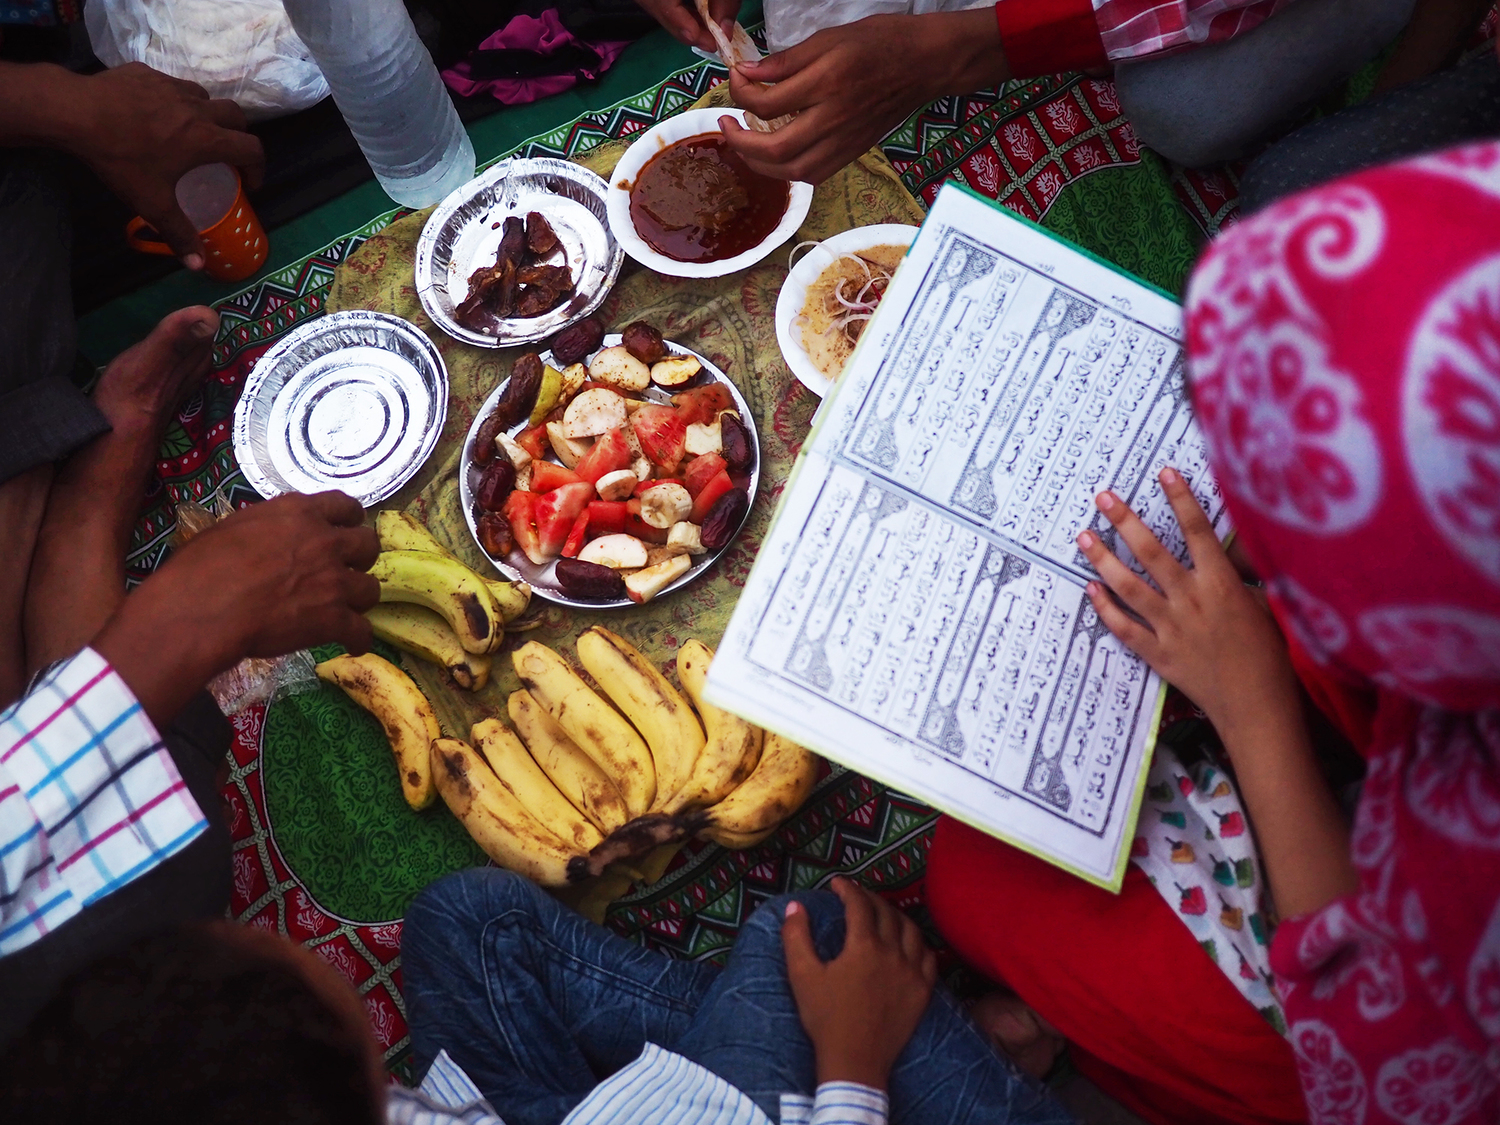 A young girl studies the Quran as her family prepares for the breaking of fast.